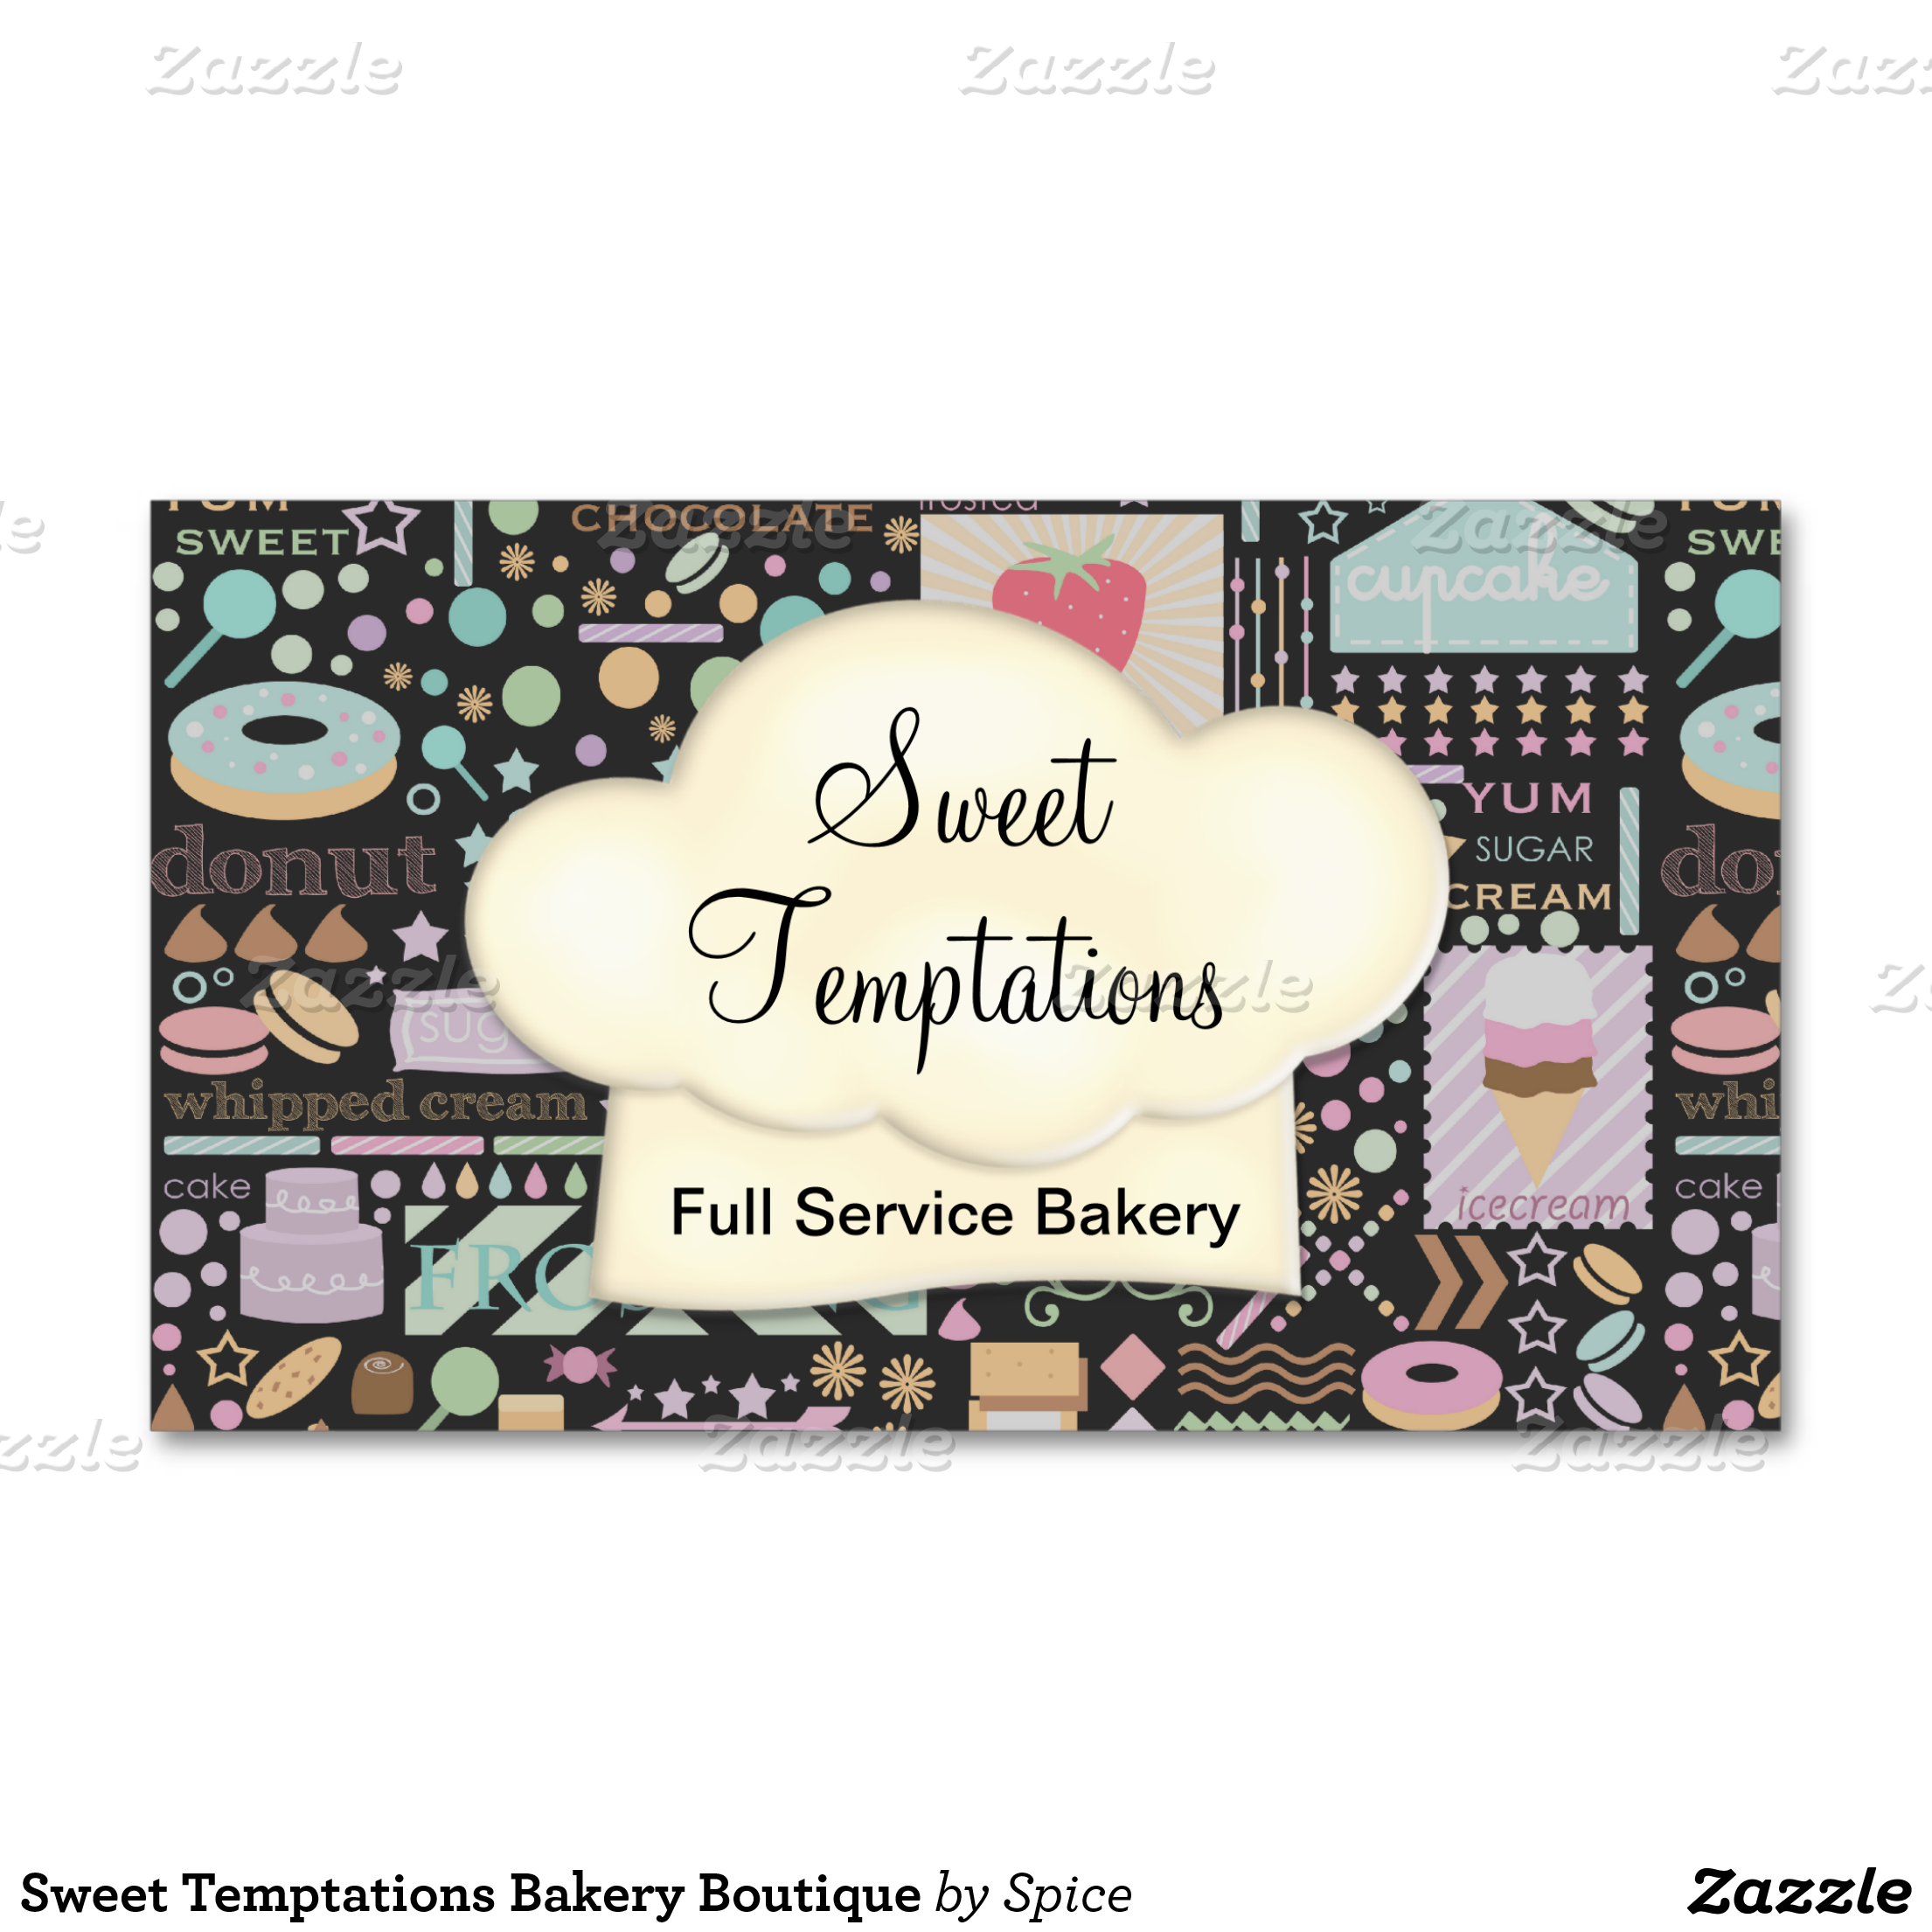 Fun whimsical bakery business card or event catering business full ...